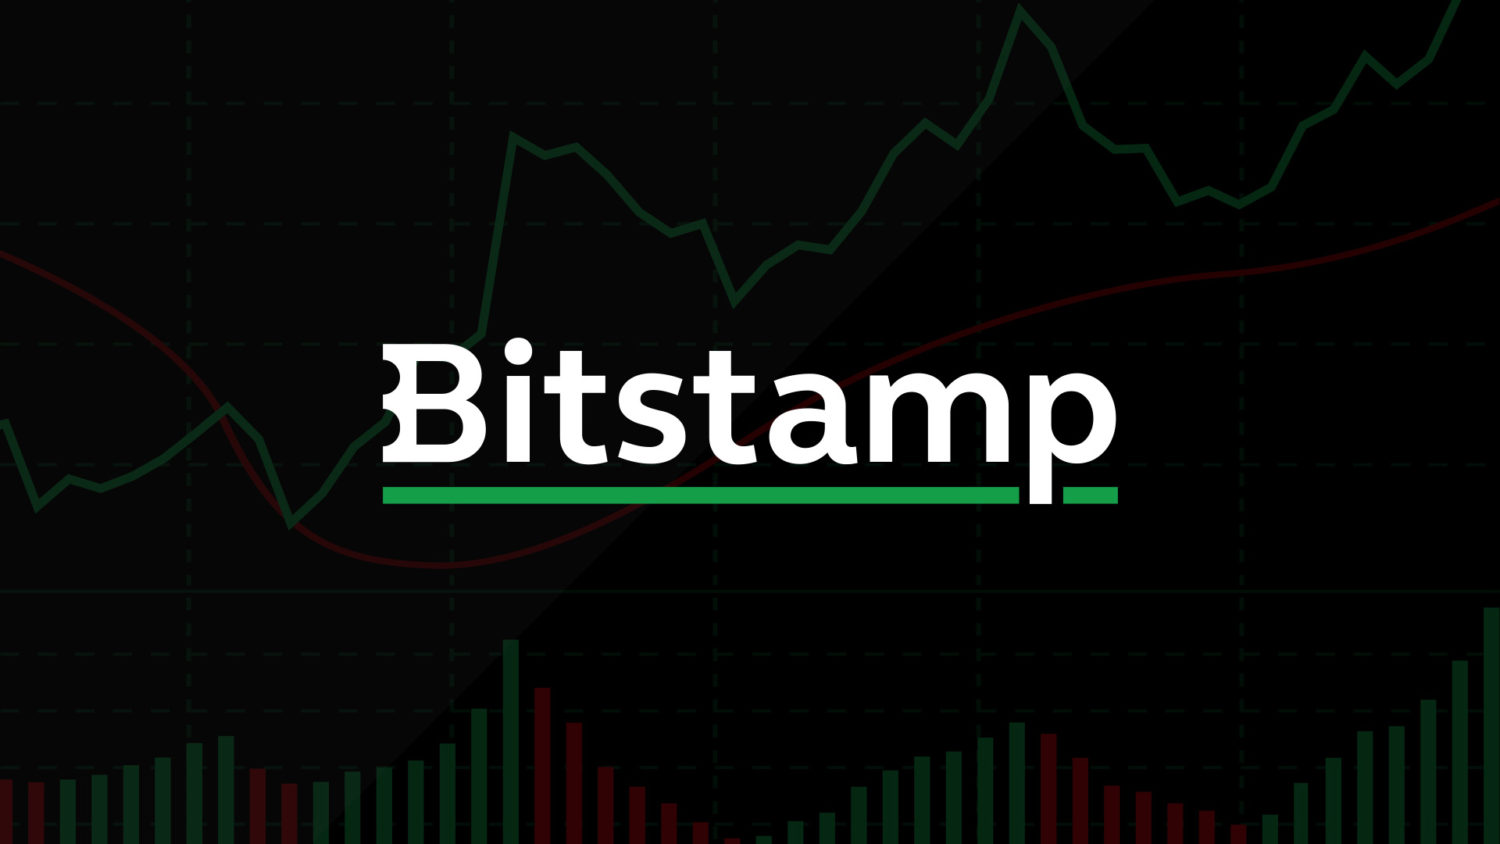 Bitstamp implements tighter KYC measures for crypto withdrawals in the Netherlands